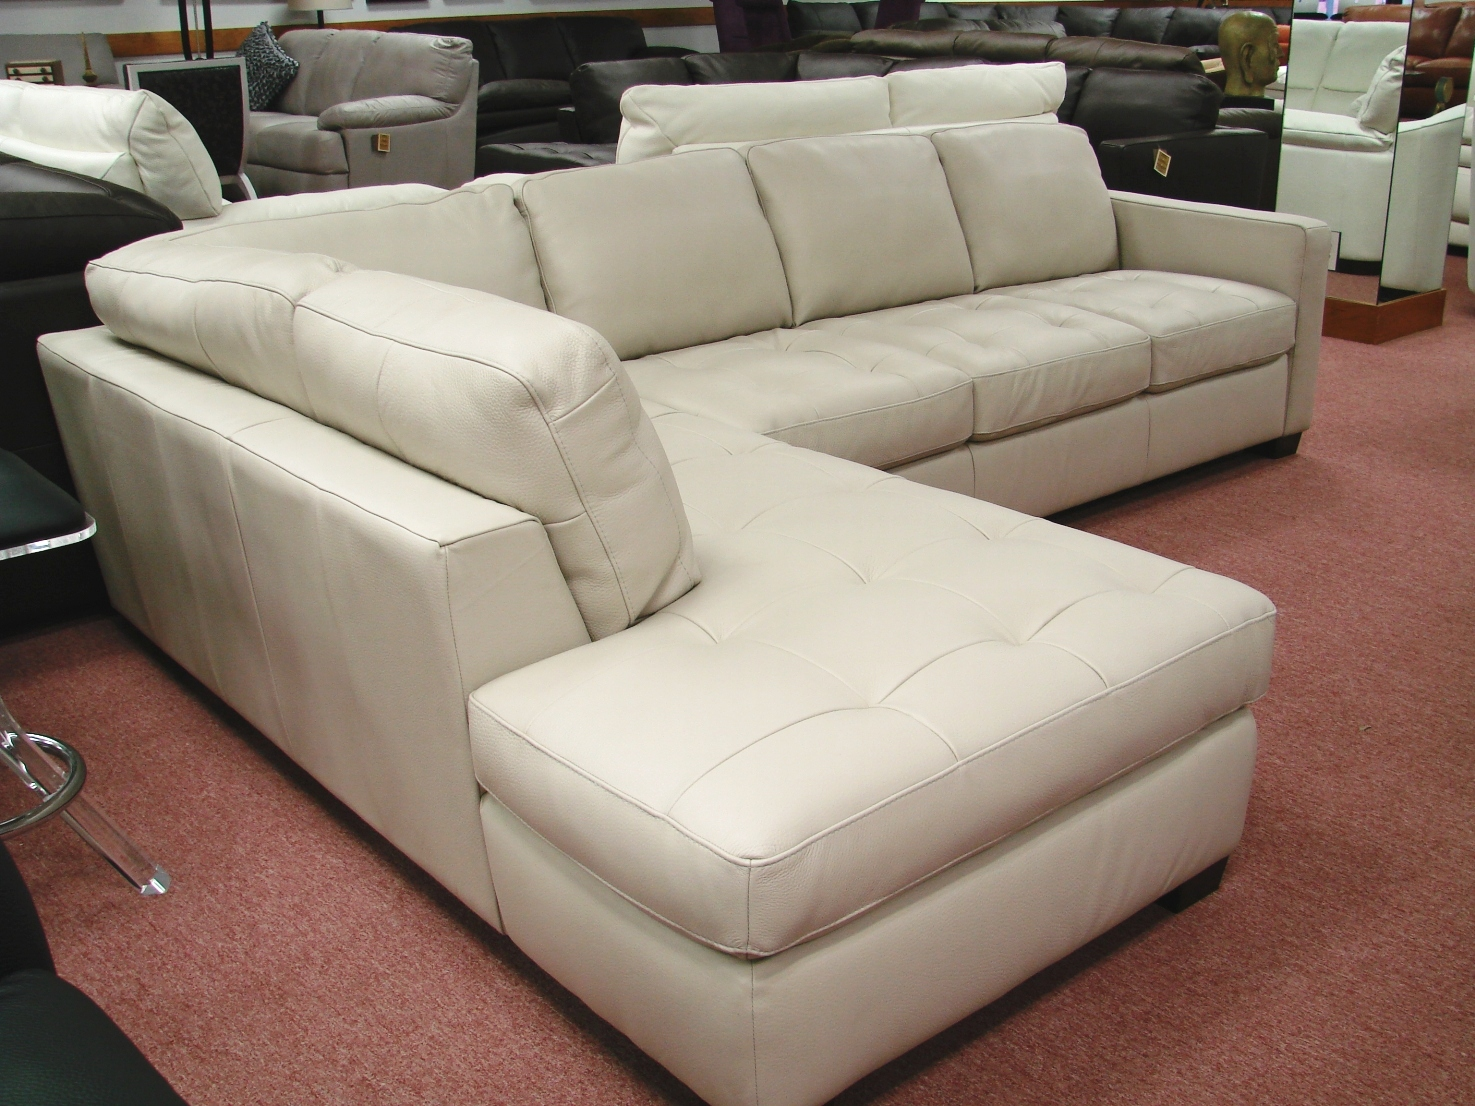 Natuzzi leather sectional on sale natuzzi sofa on sale for Couches and sofas for sale